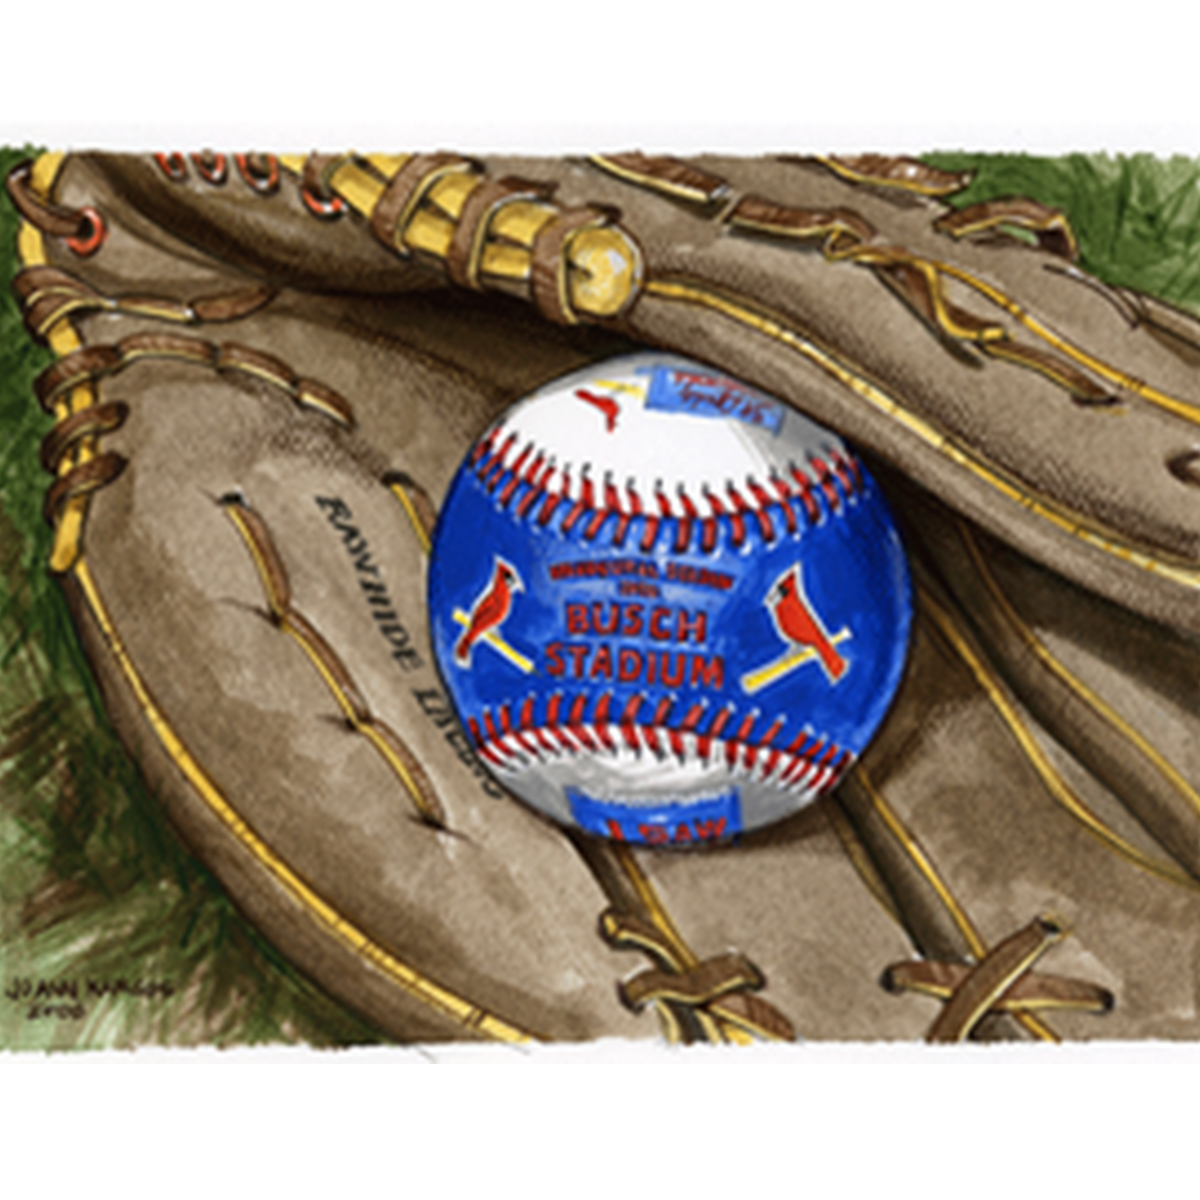 3-baseball-glove-acrylic-wash-11-x-14-from-first-group-of-images